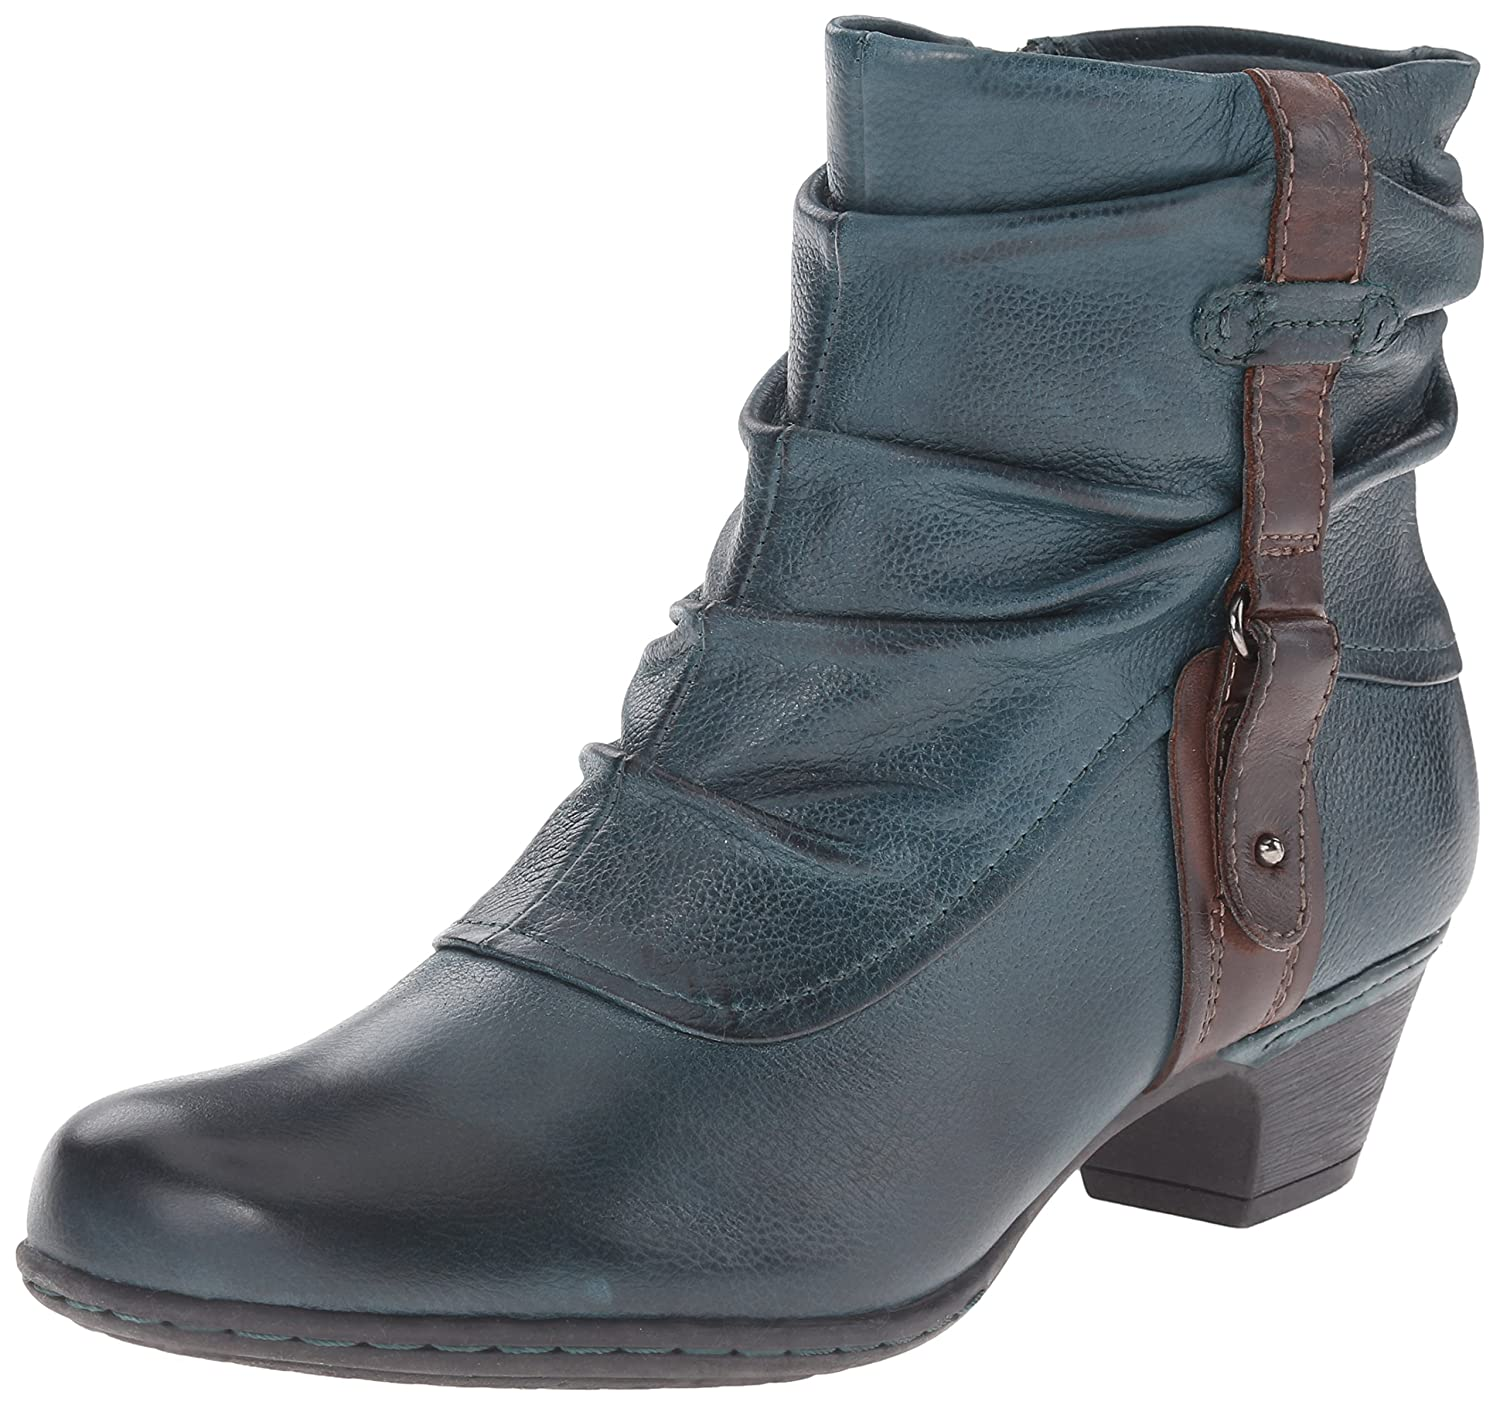 Cobb Hill Rockport Women's Alexandra Boot B00MHLOLQO 11 N US|Blue Teal